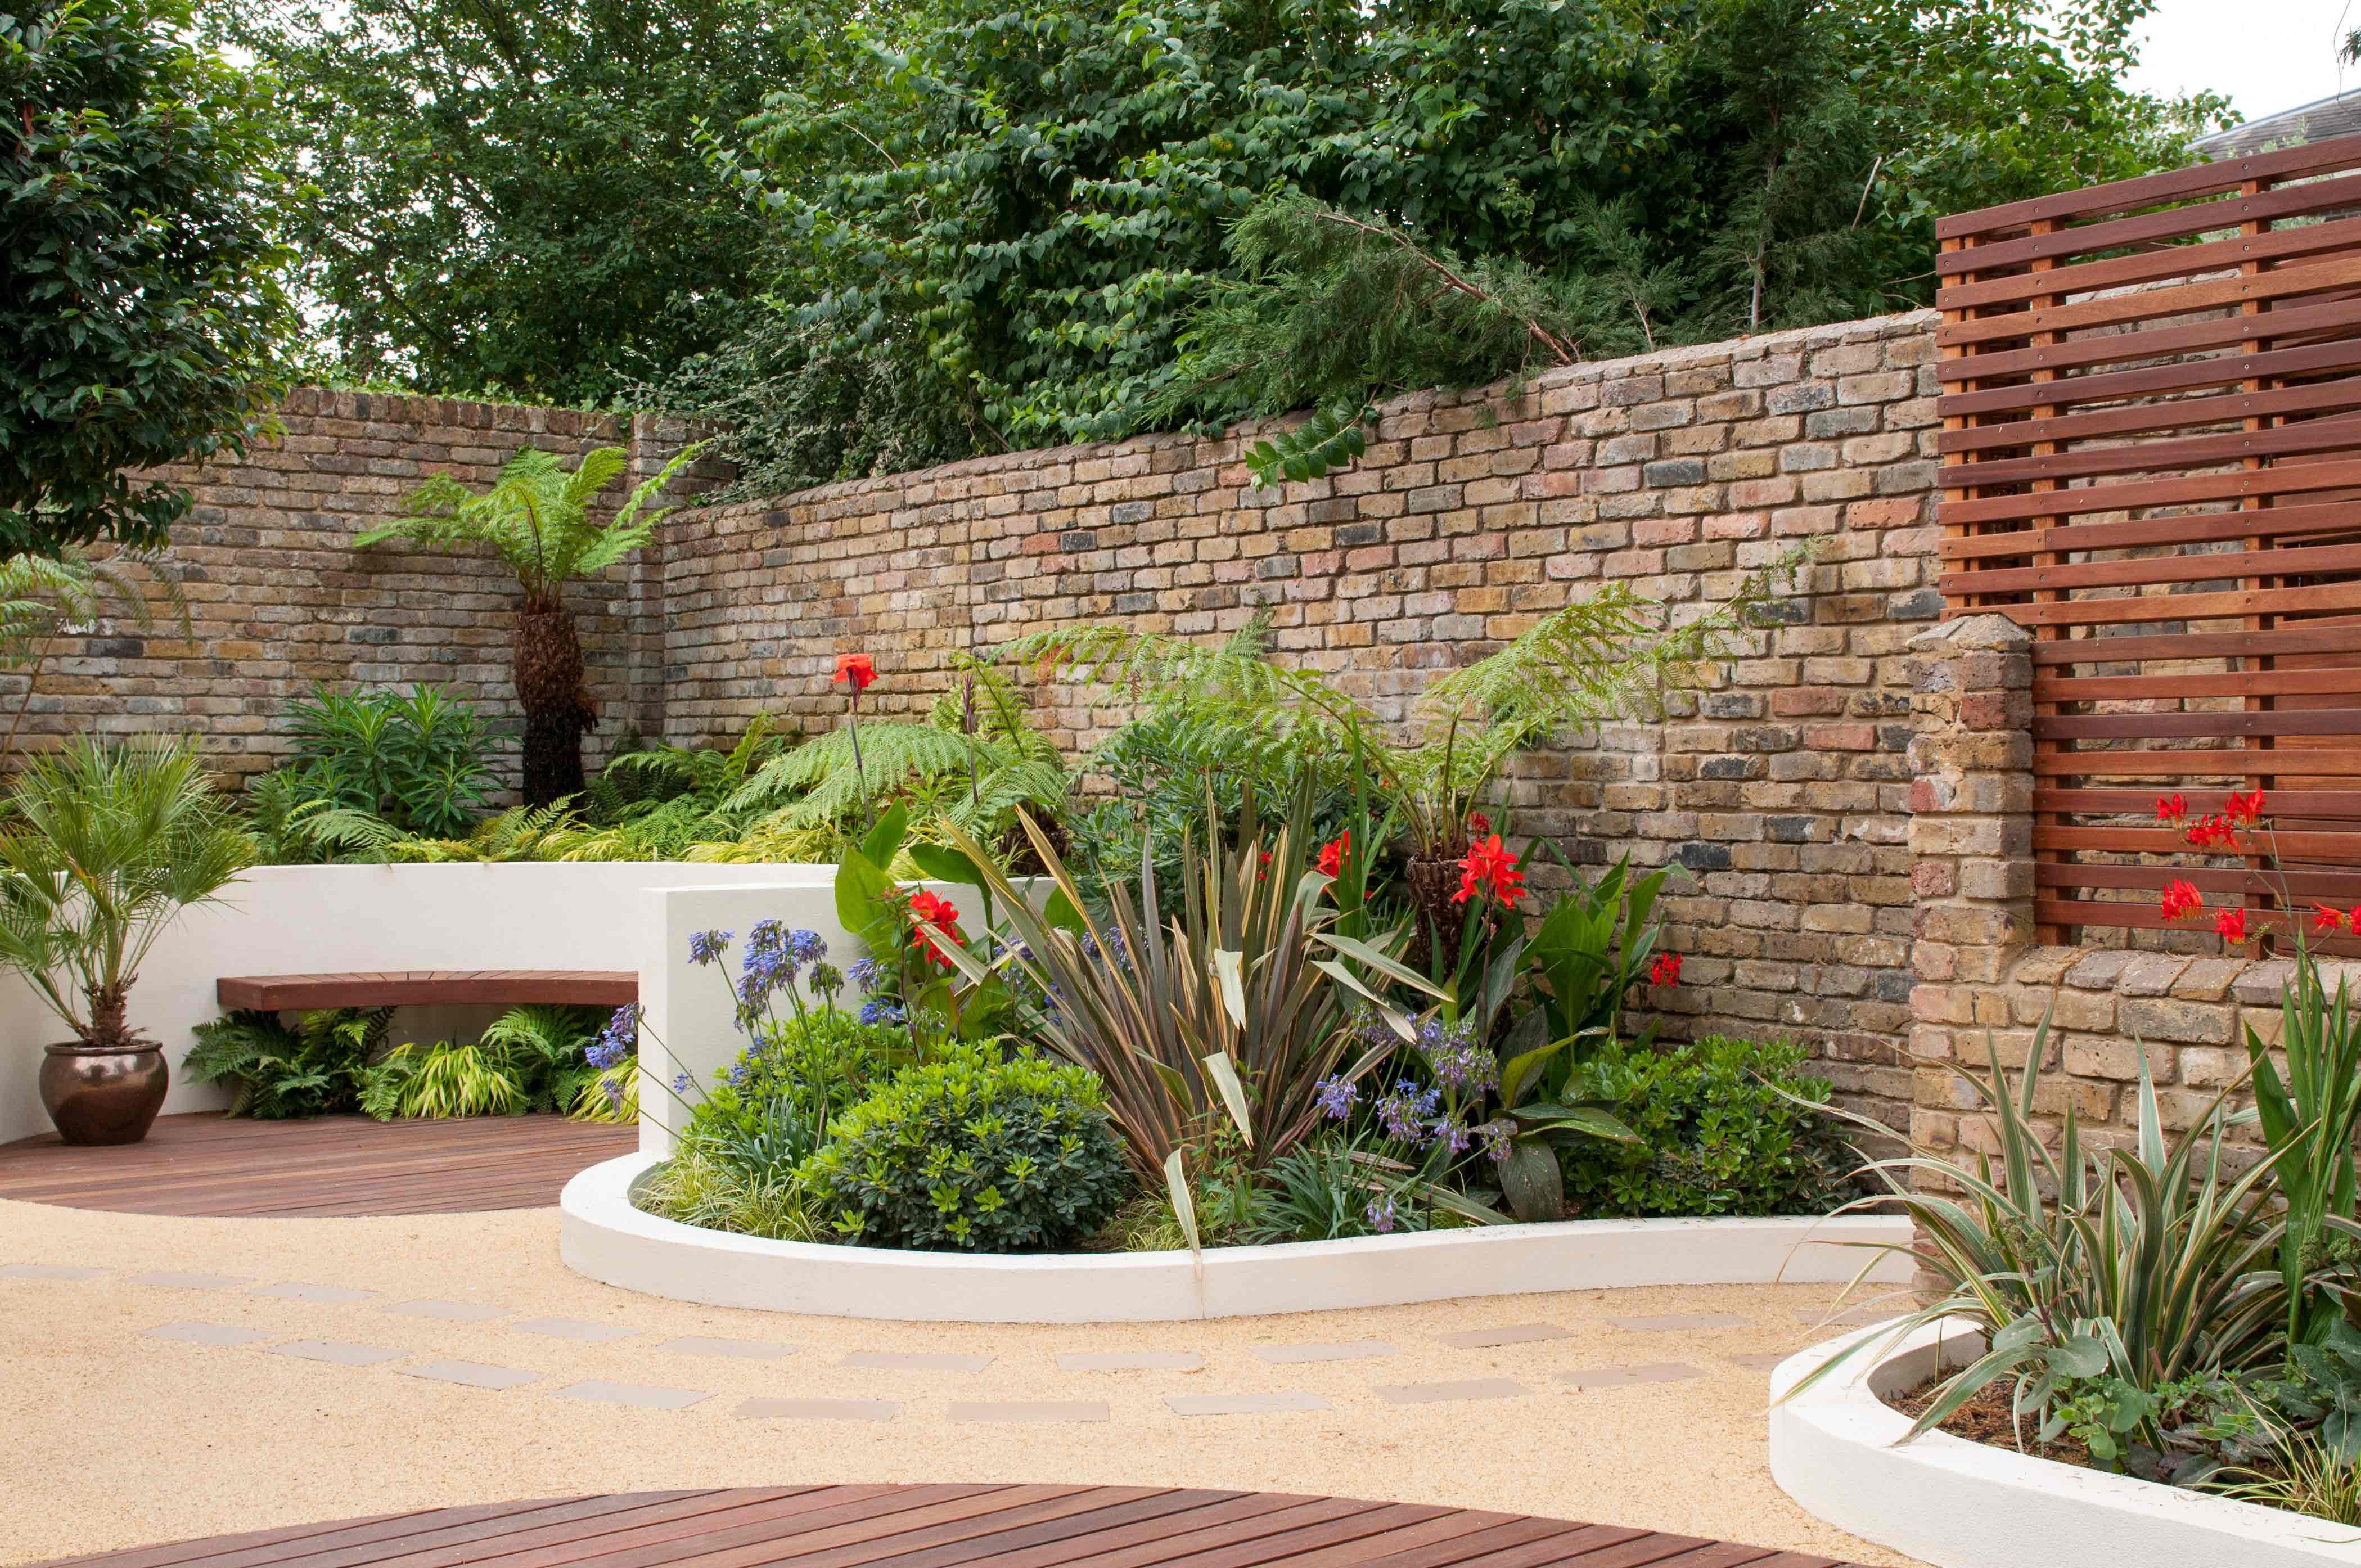 Blackheath courtyard garden garden design london for Garden designs images pictures